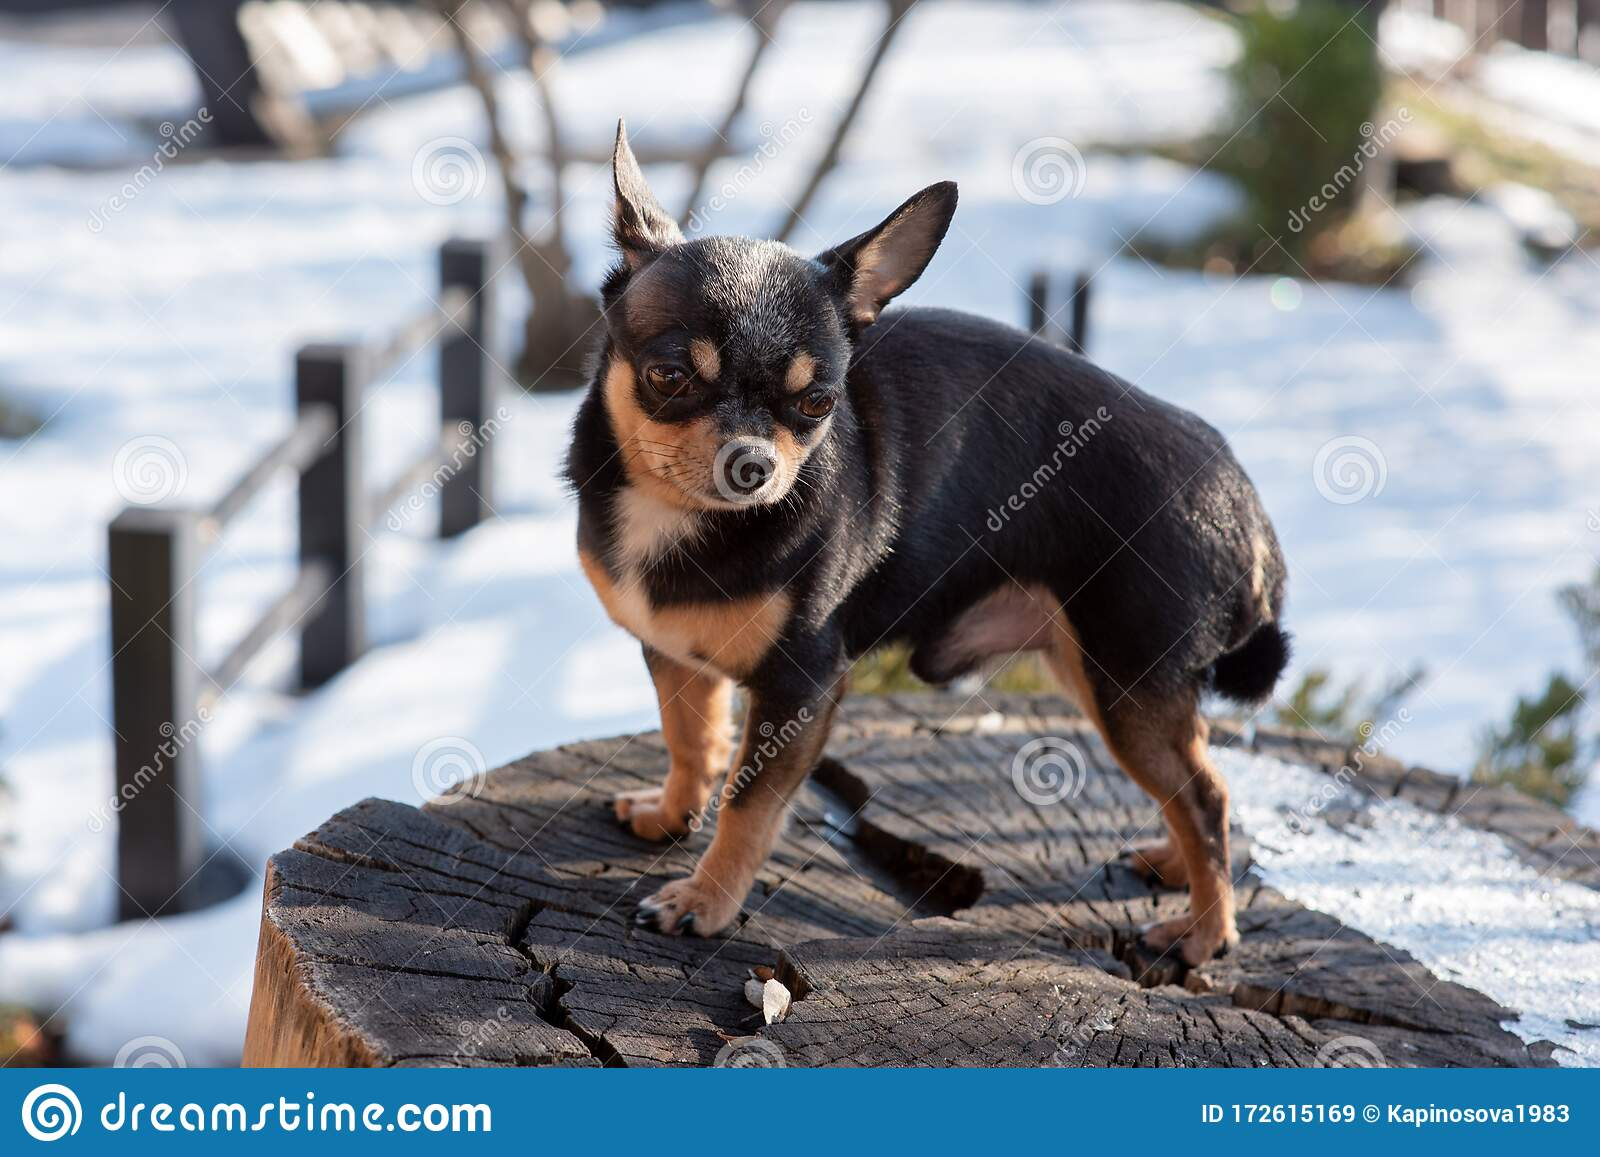 Pet Dog Chihuahua Walks On The Street Chihuahua Dog For A Walk Chihuahua Black Brown And White Stock Image Image Of Outside Chihuahua 172615169